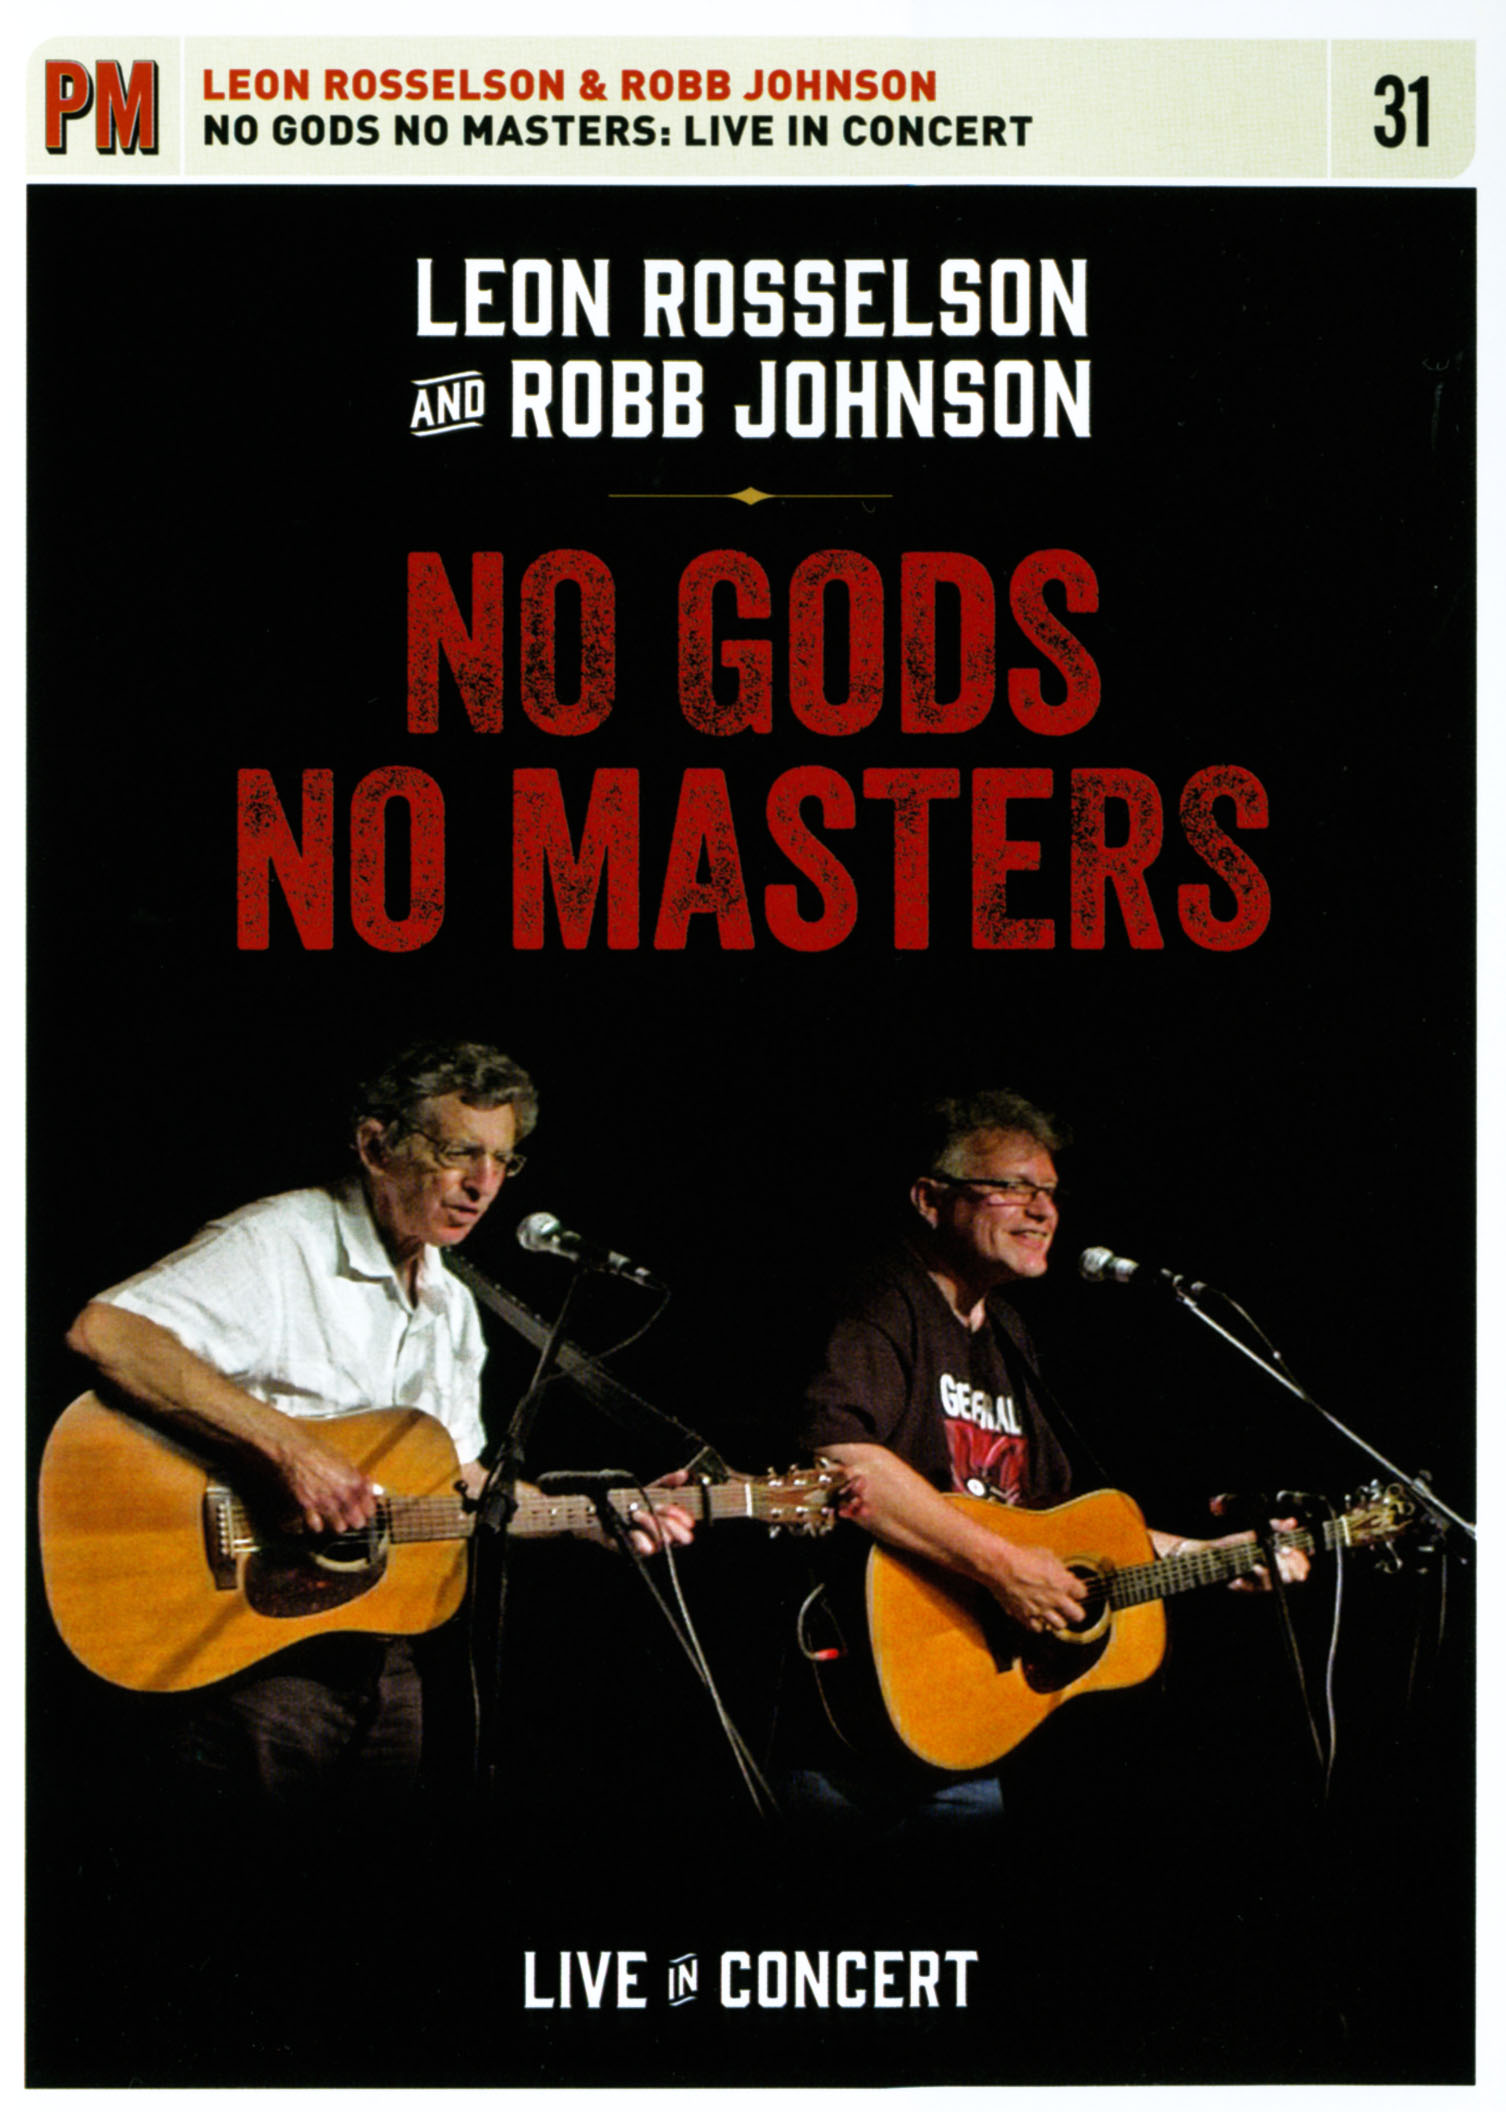 Leon Rosselson and Robb Johnson: No Gods No Masters - Live in Concert